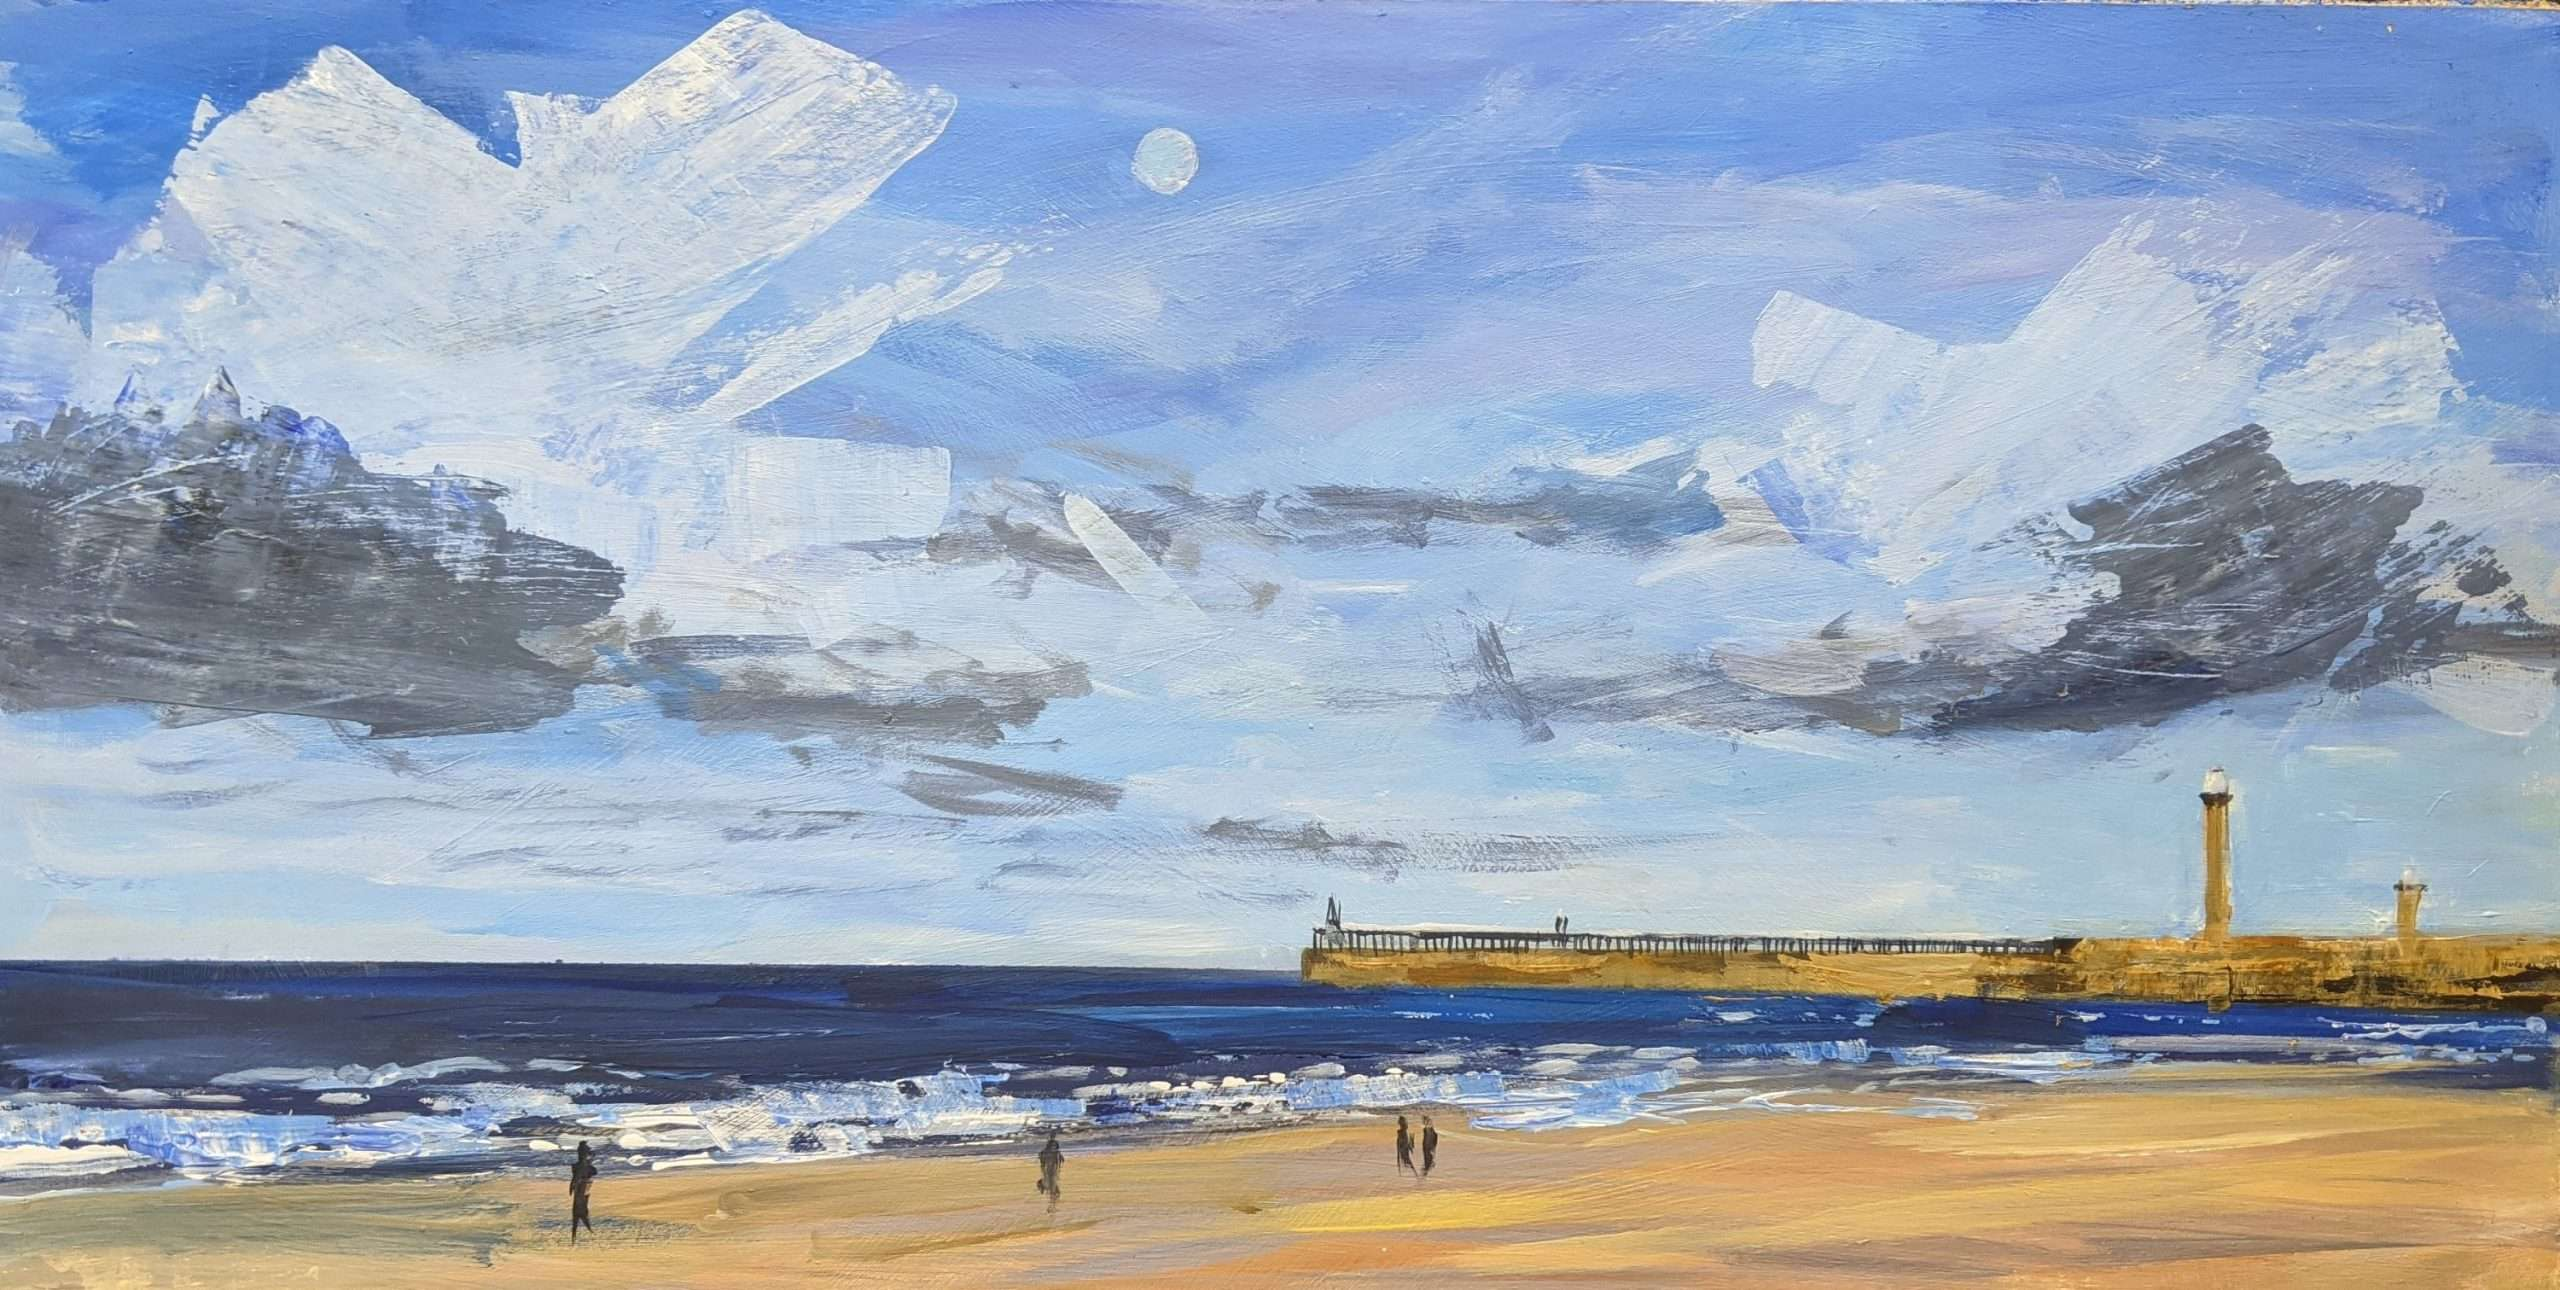 Painting of Whitby - blustery showers and a full moon